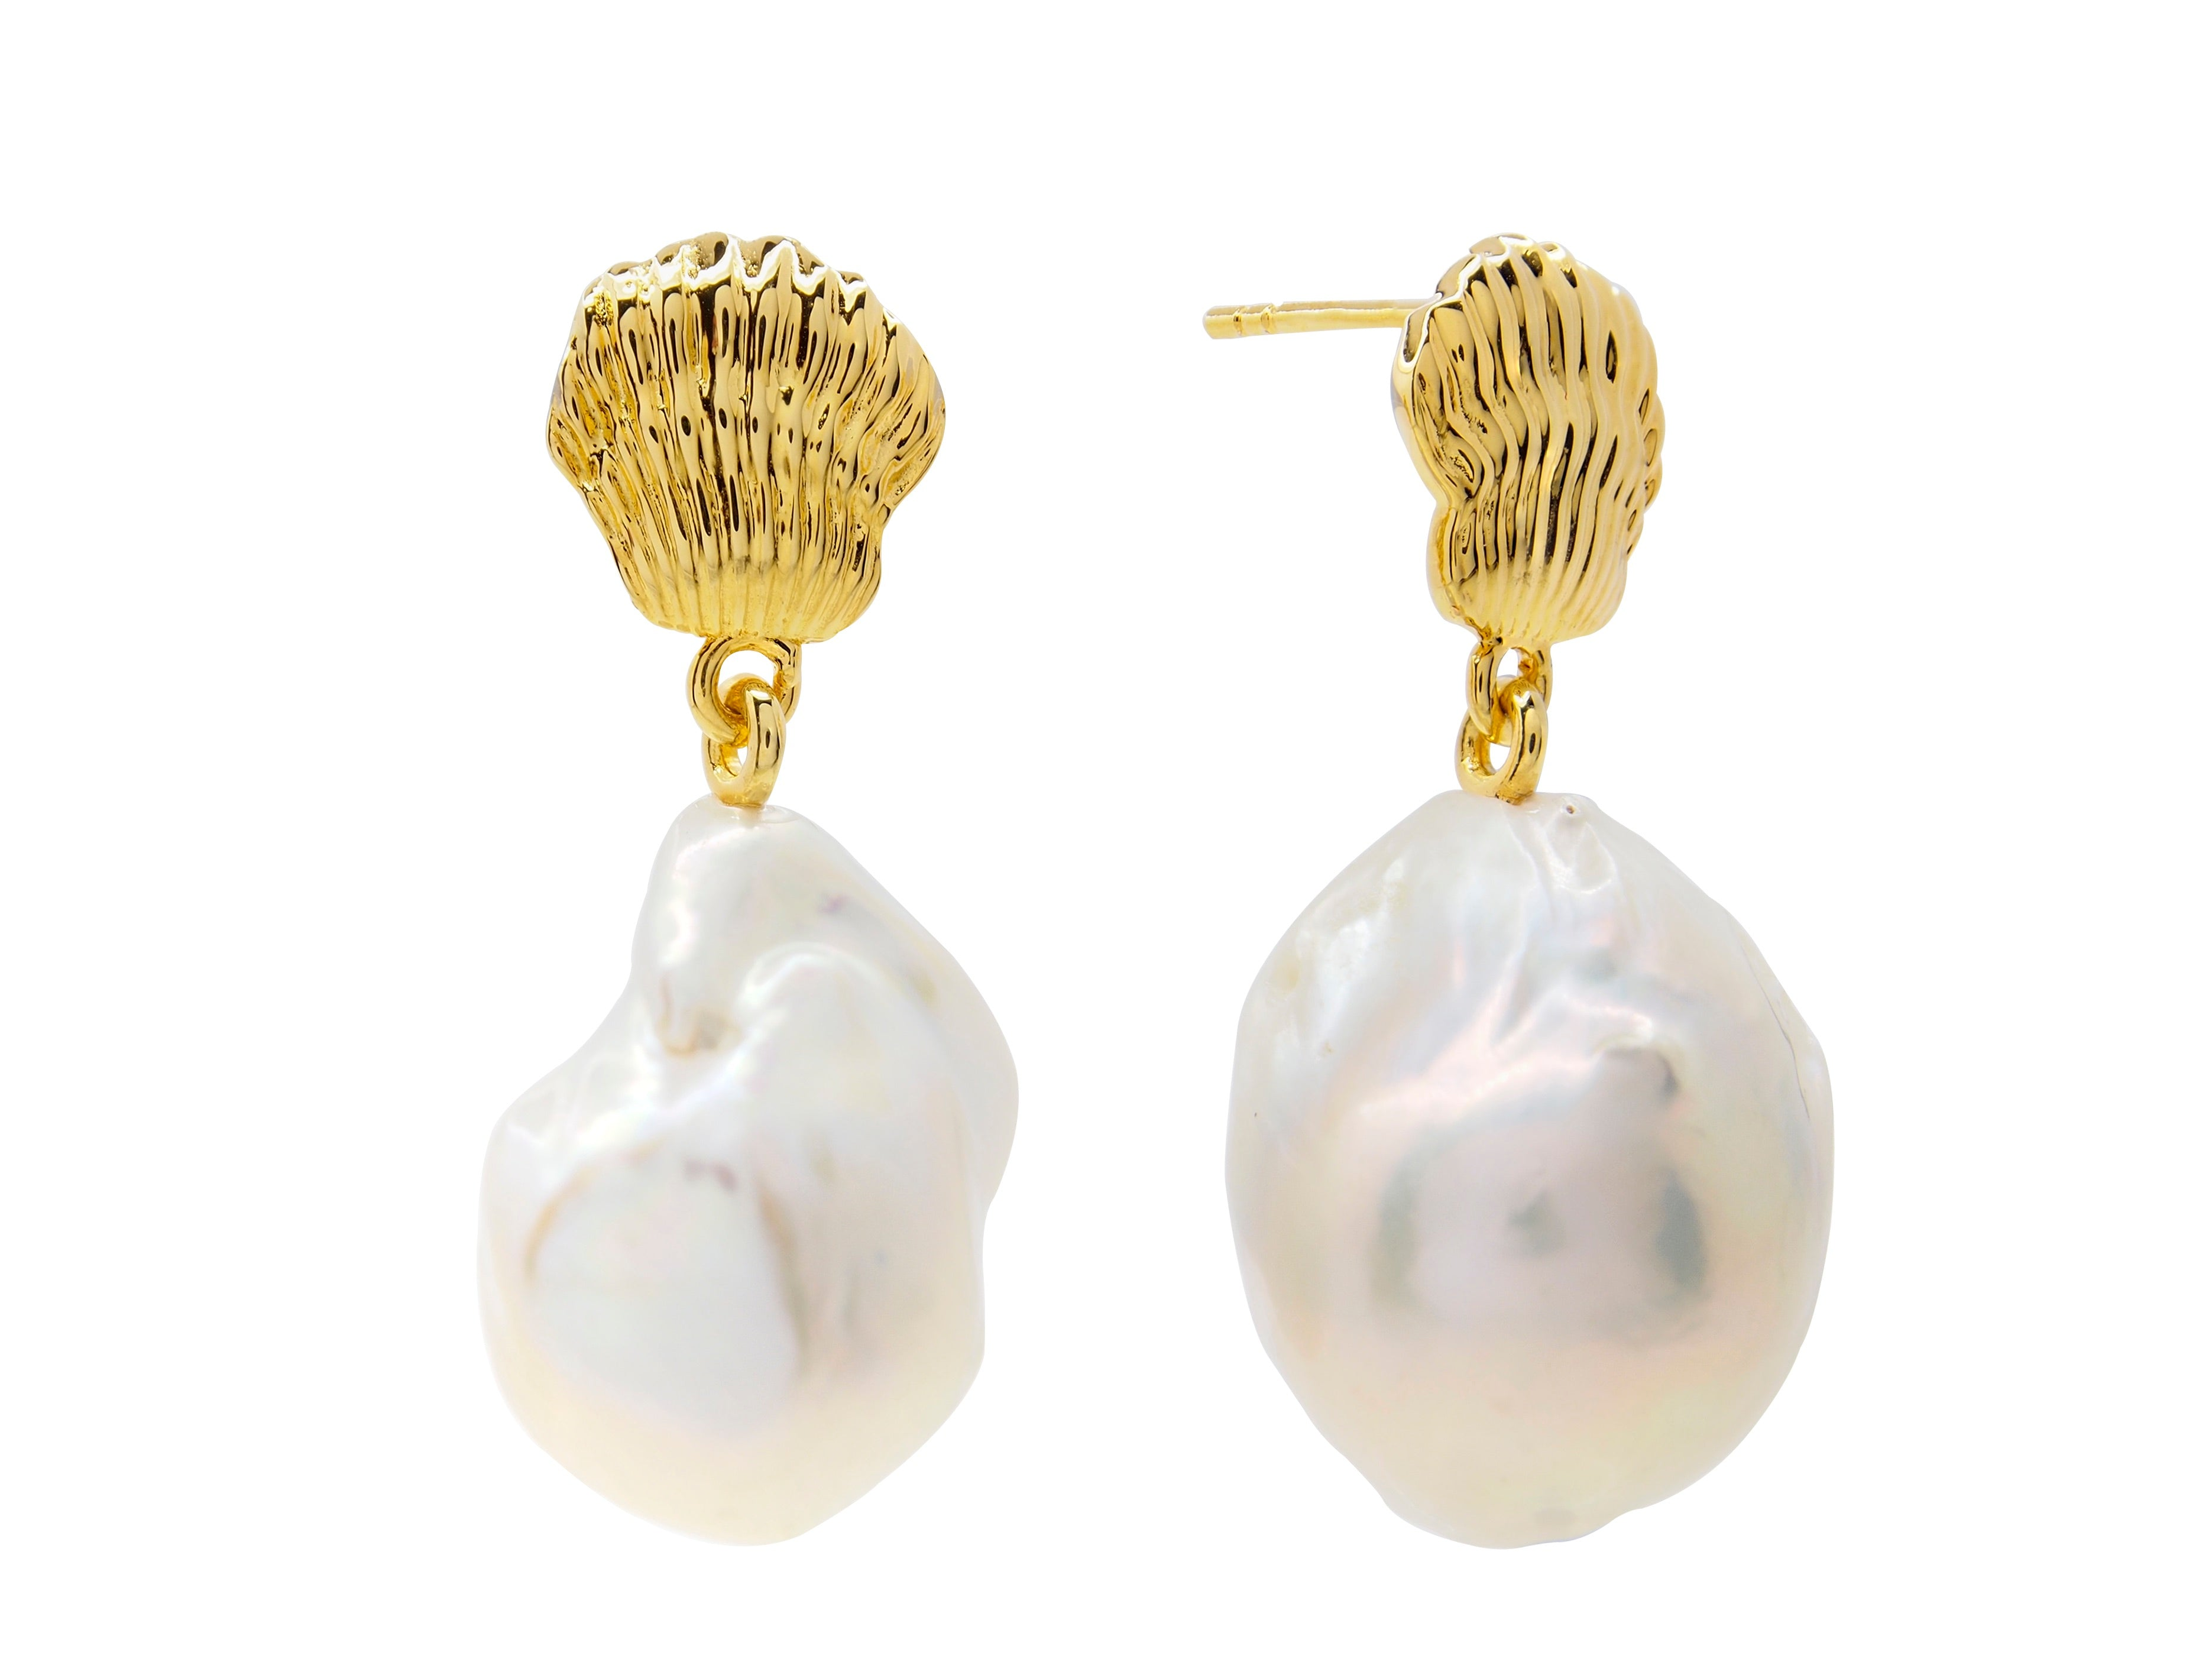 Ningaloo baroque pearl earrings, sterling silver, yellow gold plated